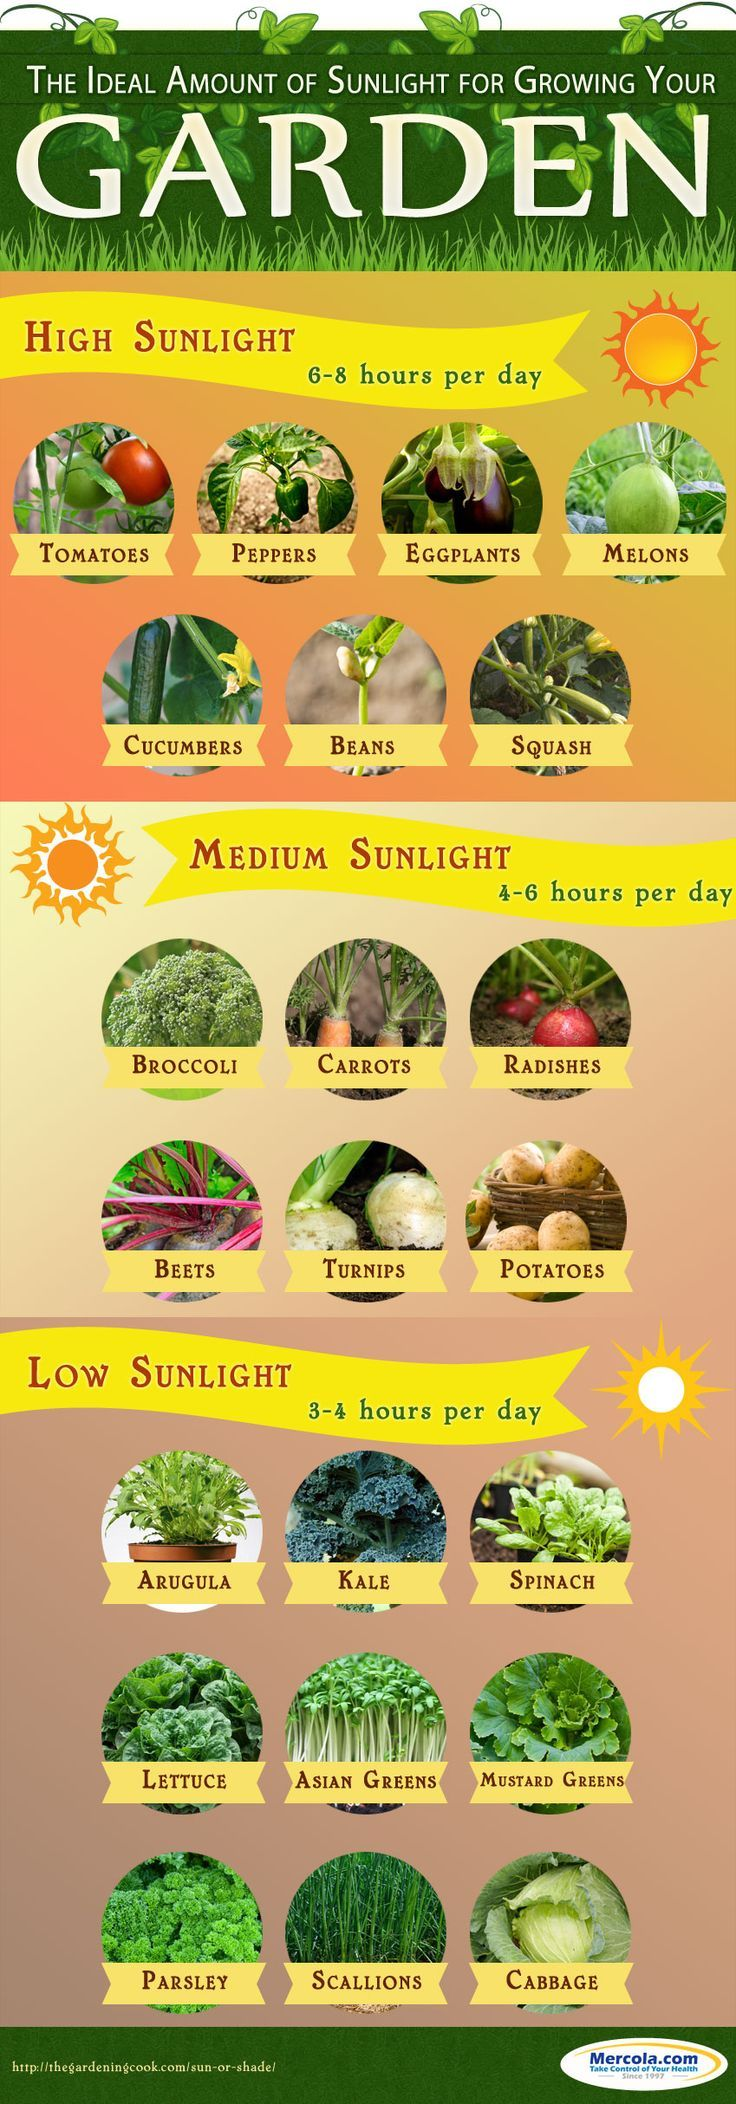 Get your dose of gardening ideas and important tips to consider for the ideal amounts of sunlight for your plants as recommended by Dr. Mercola http://www.mercola.com/infographics/gardening.htm